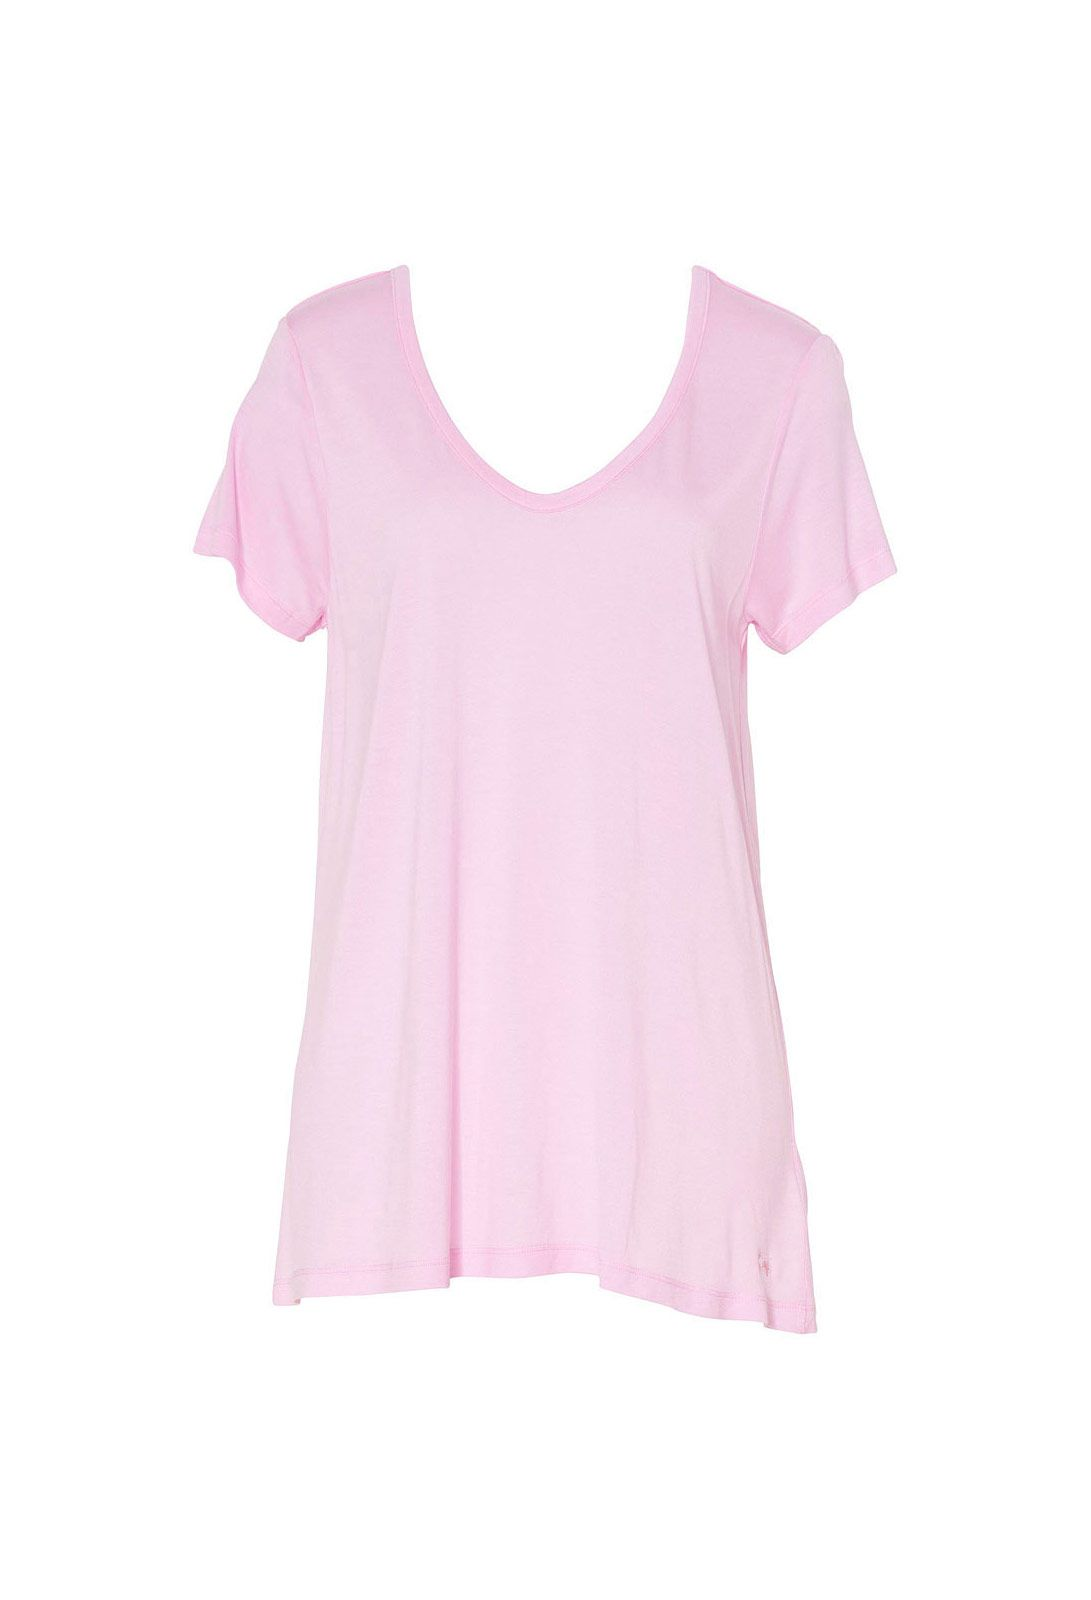 Pa Classic Sloppy V Neck Tee | Peter Alexander | Wish List ...